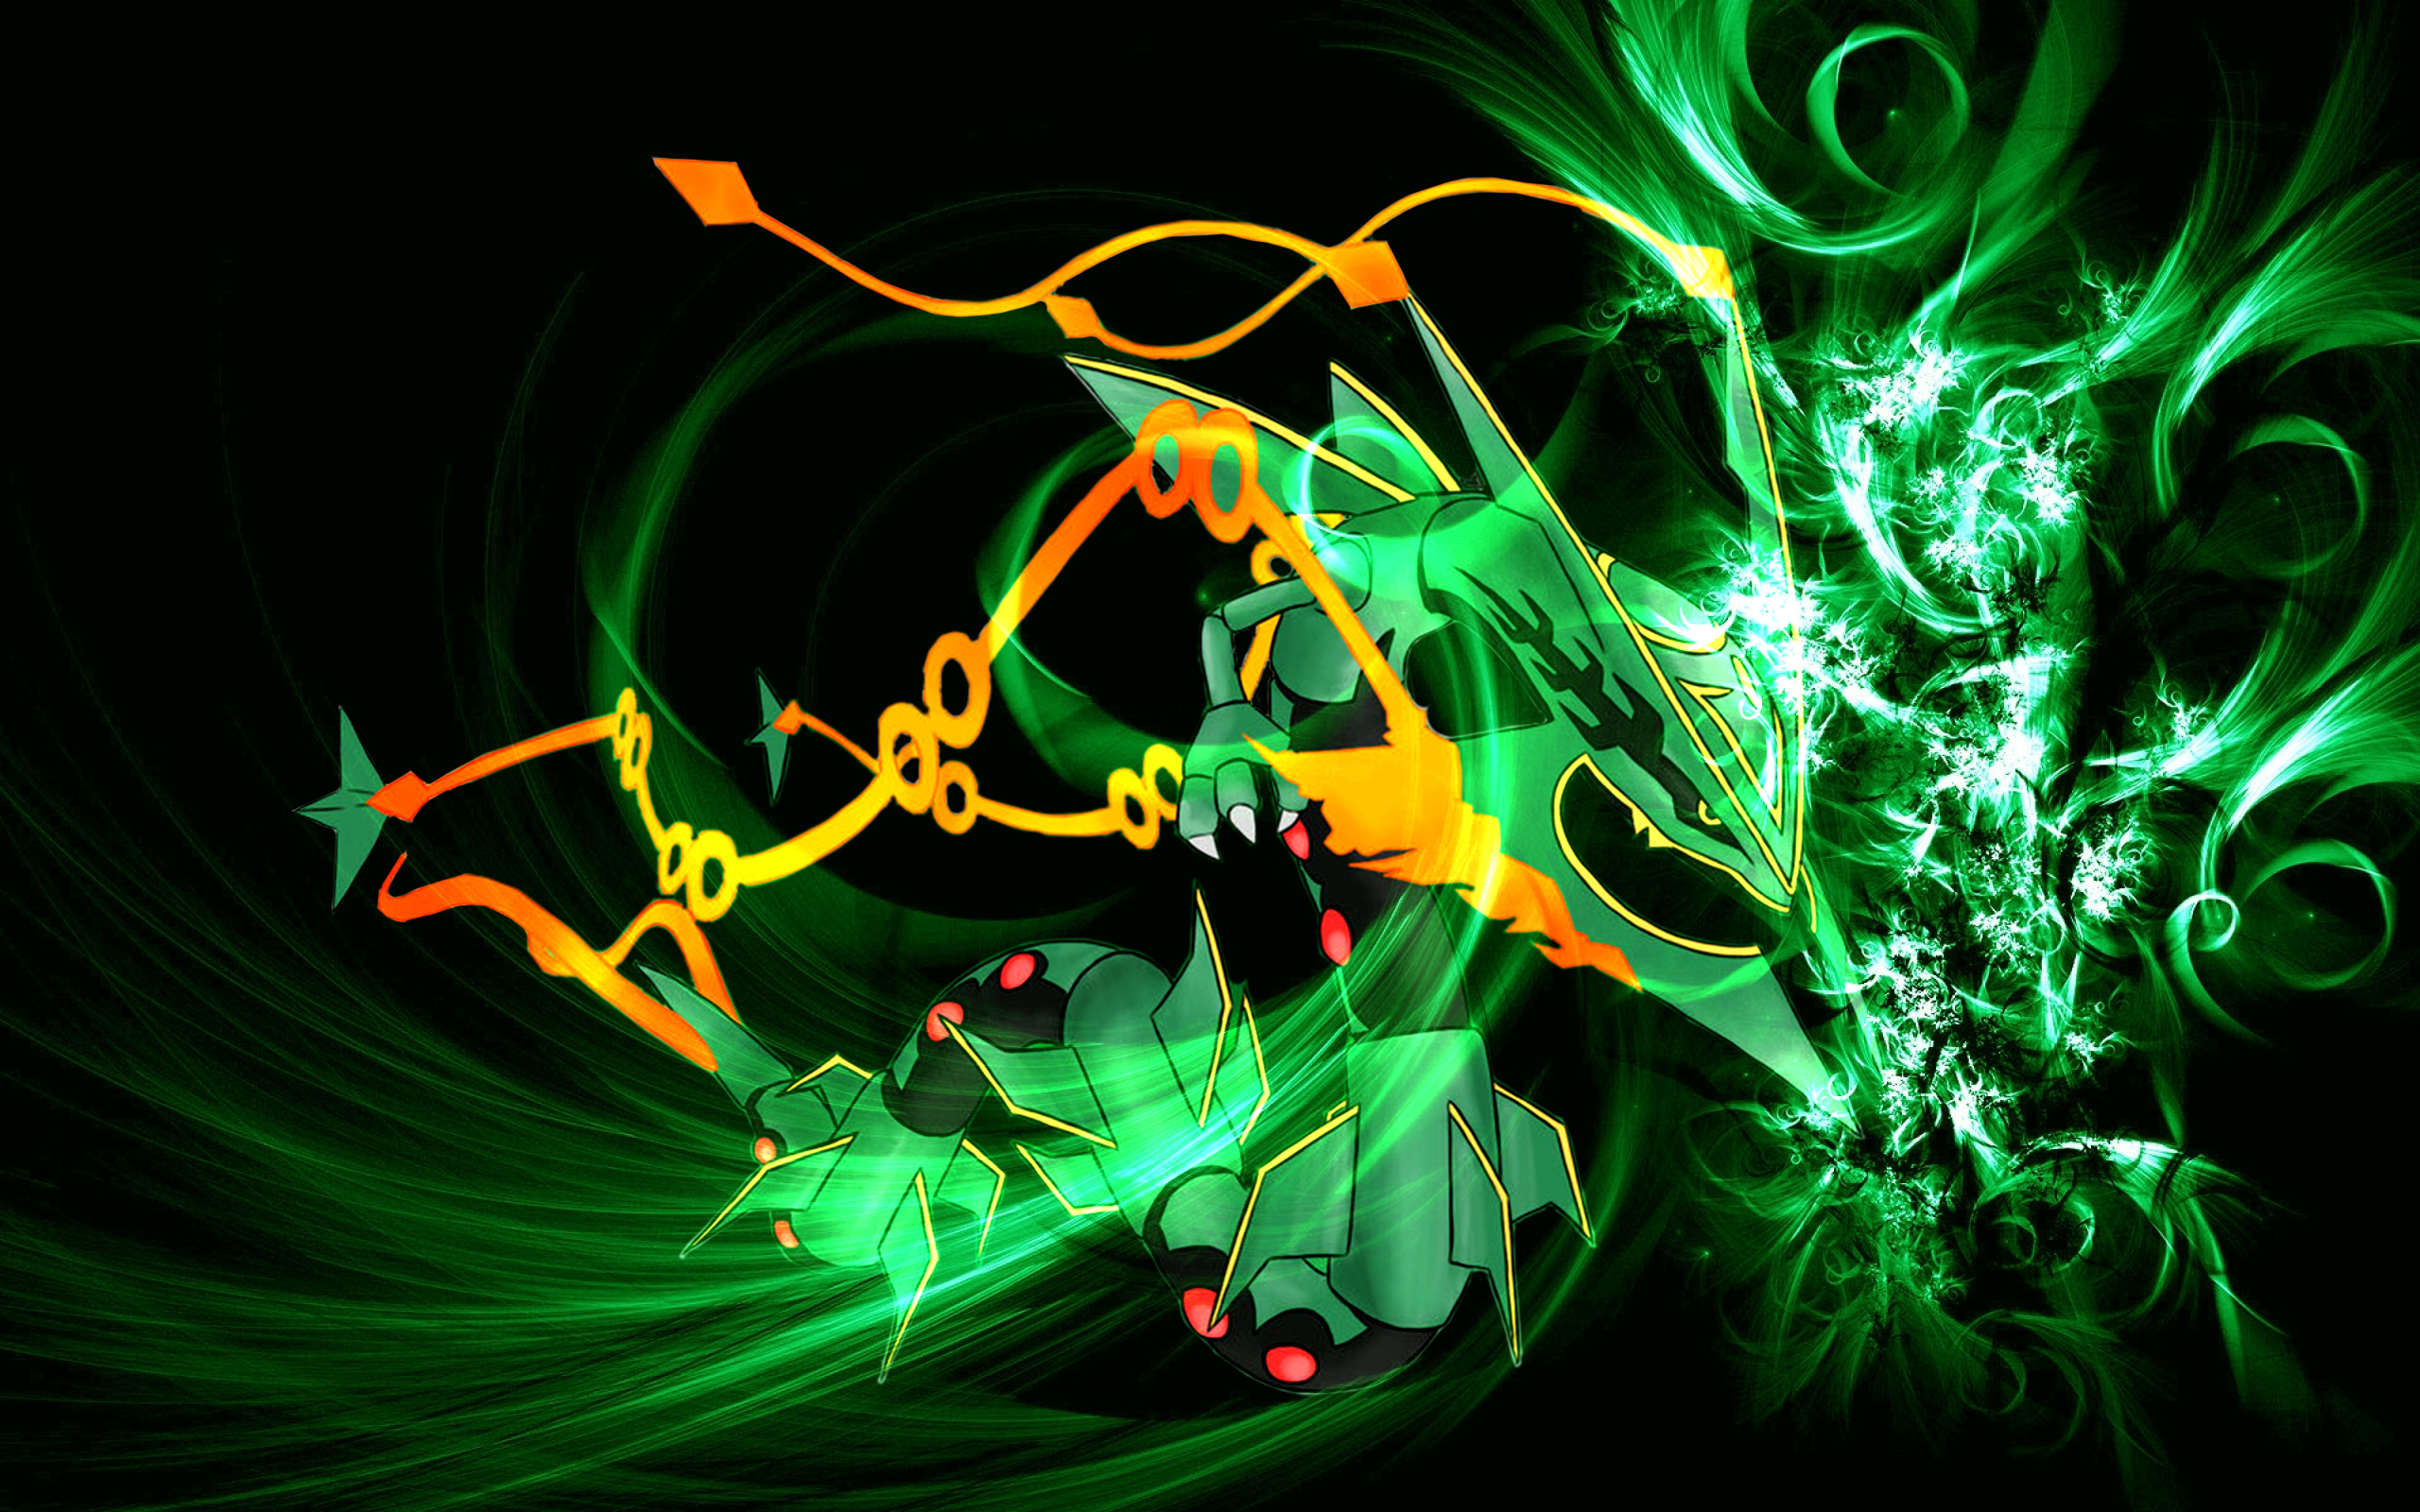 emerald rayquaza wallpapers - photo #45